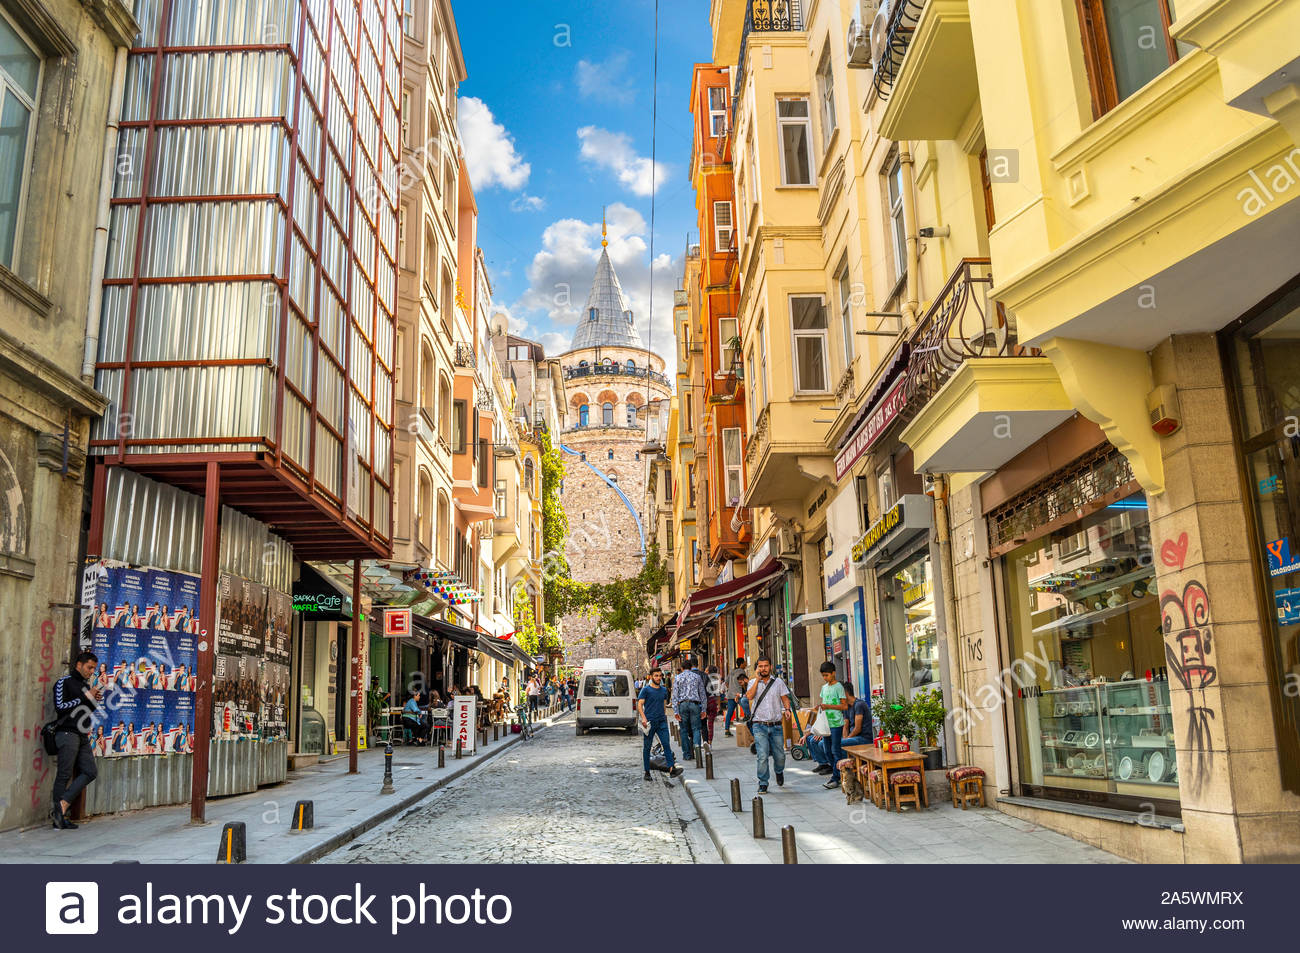 A colorful, busy street of cafes, shops people and a stray cat with the Galata Tower behind, in Istanbul, Turkey. Stock Photo